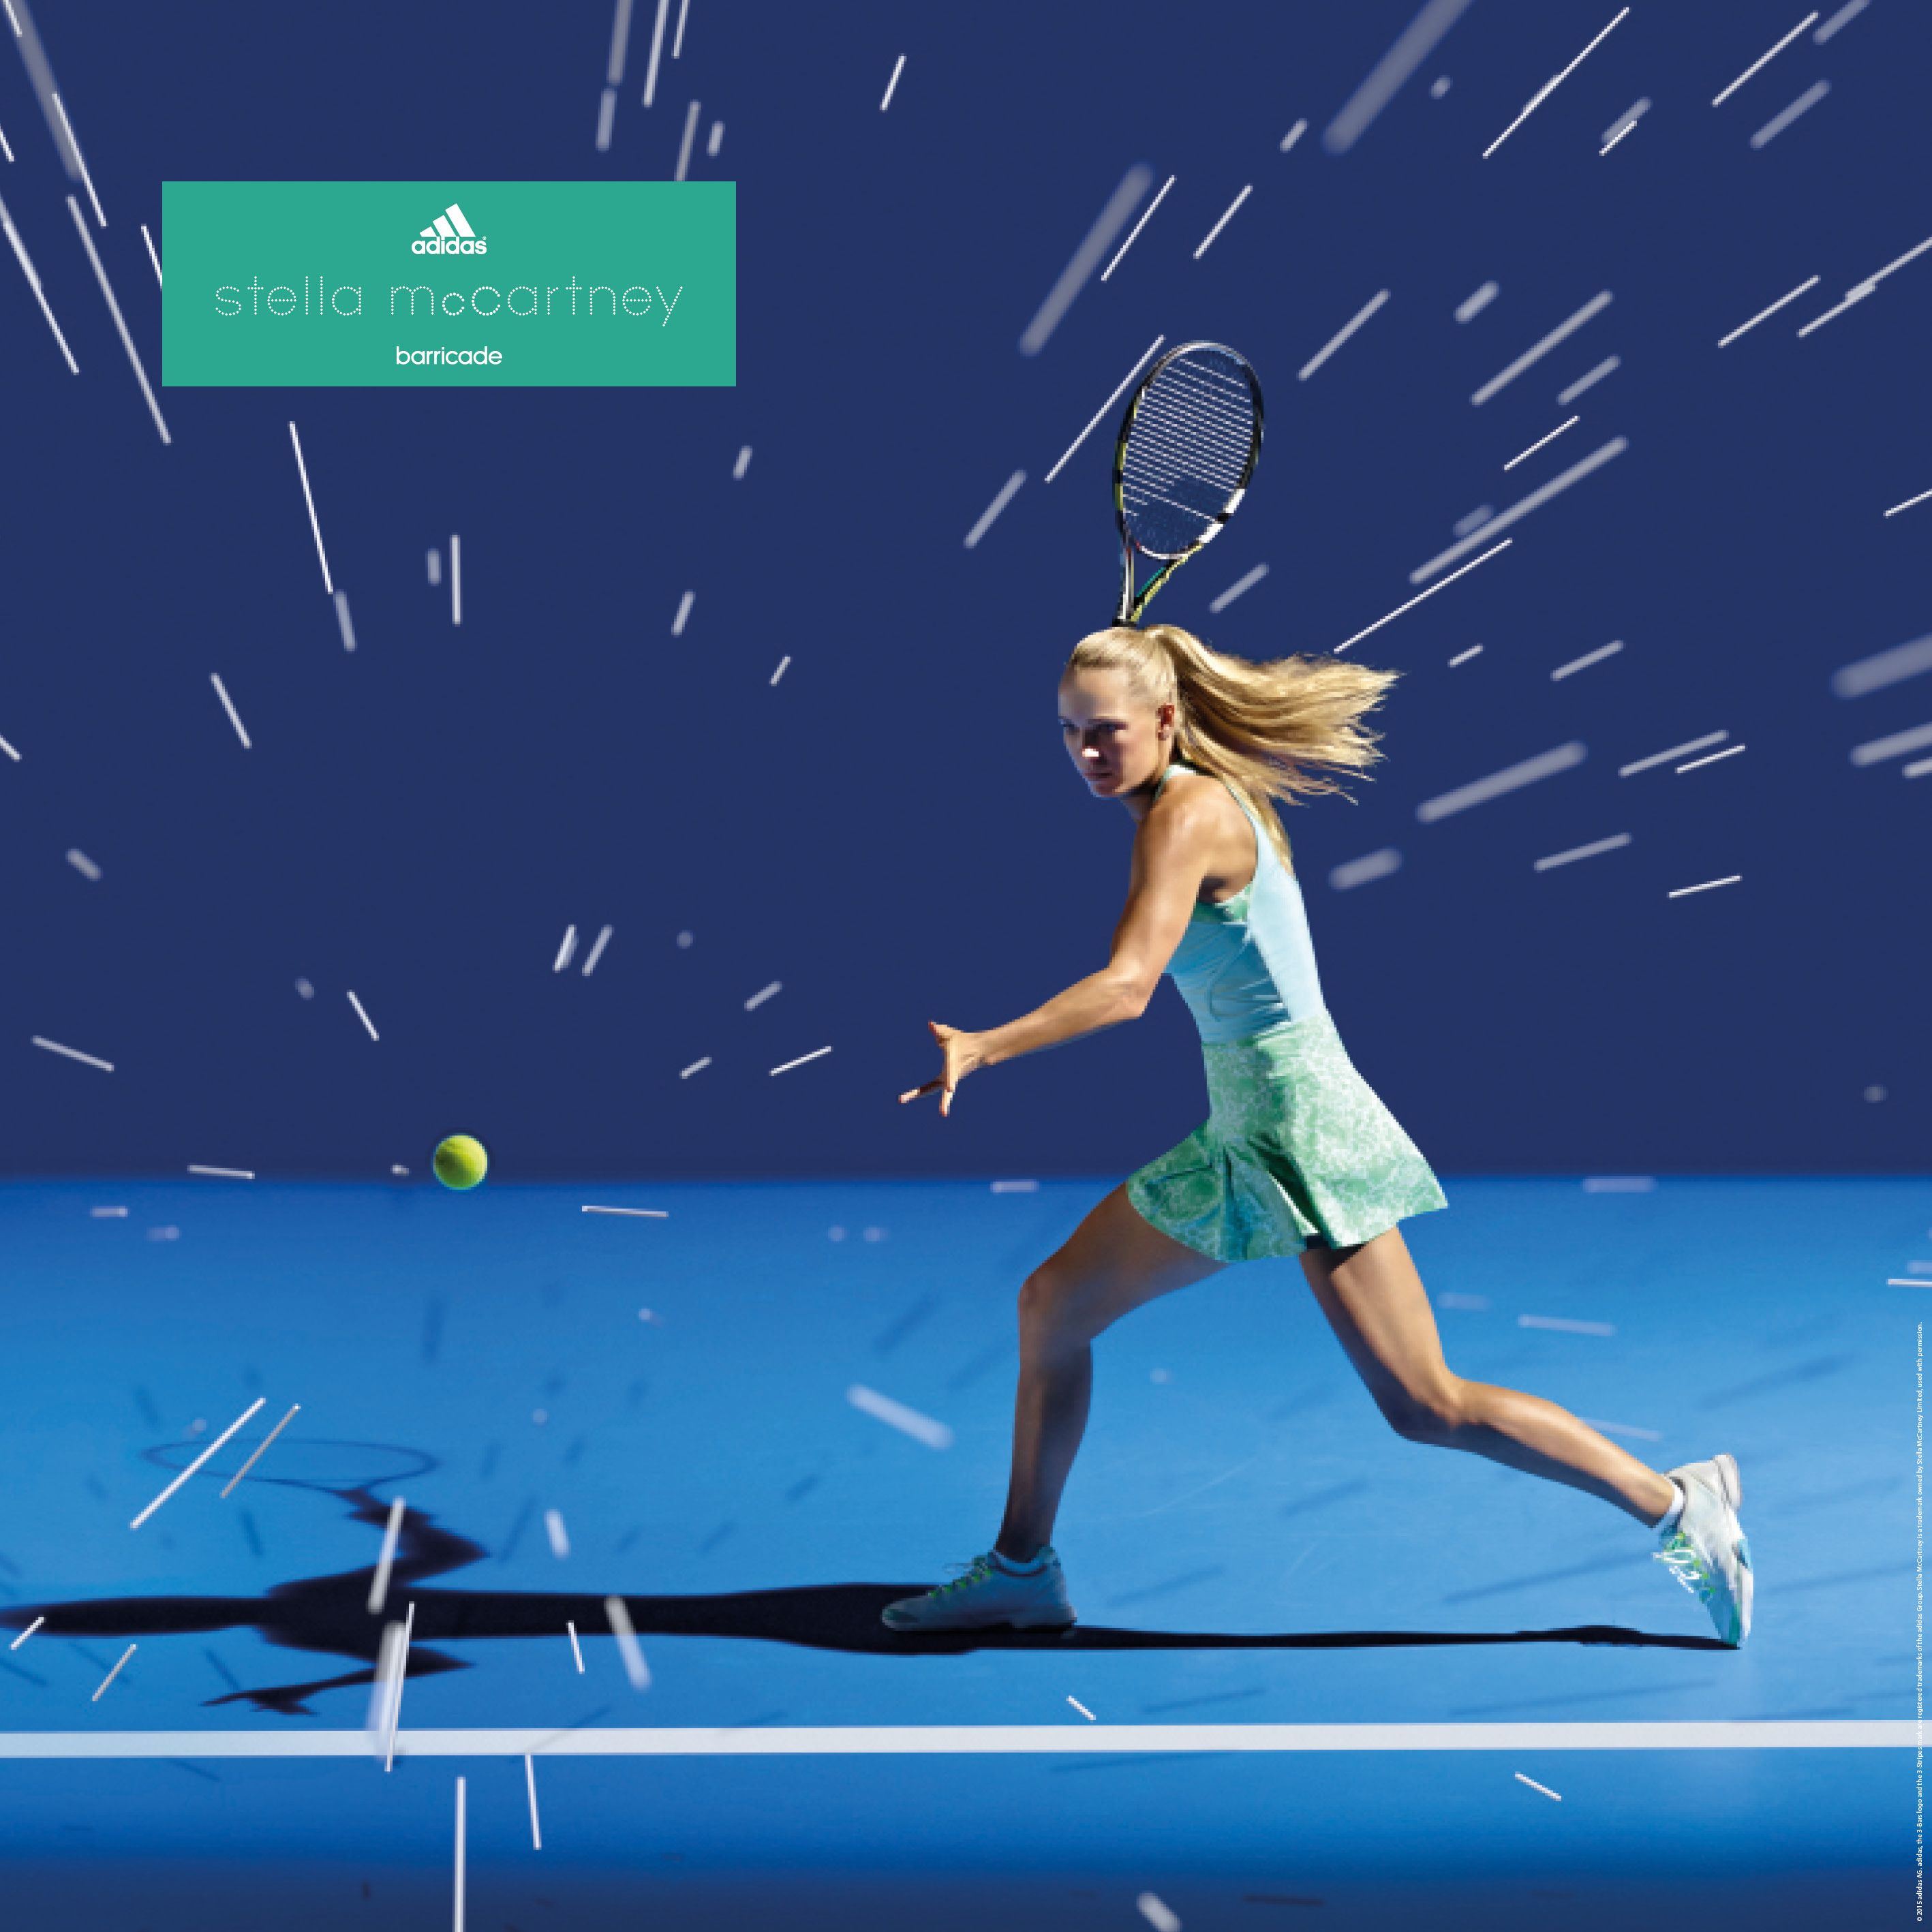 We Love Adidas By Stella Mccartney And Its No Surprise That Caroline